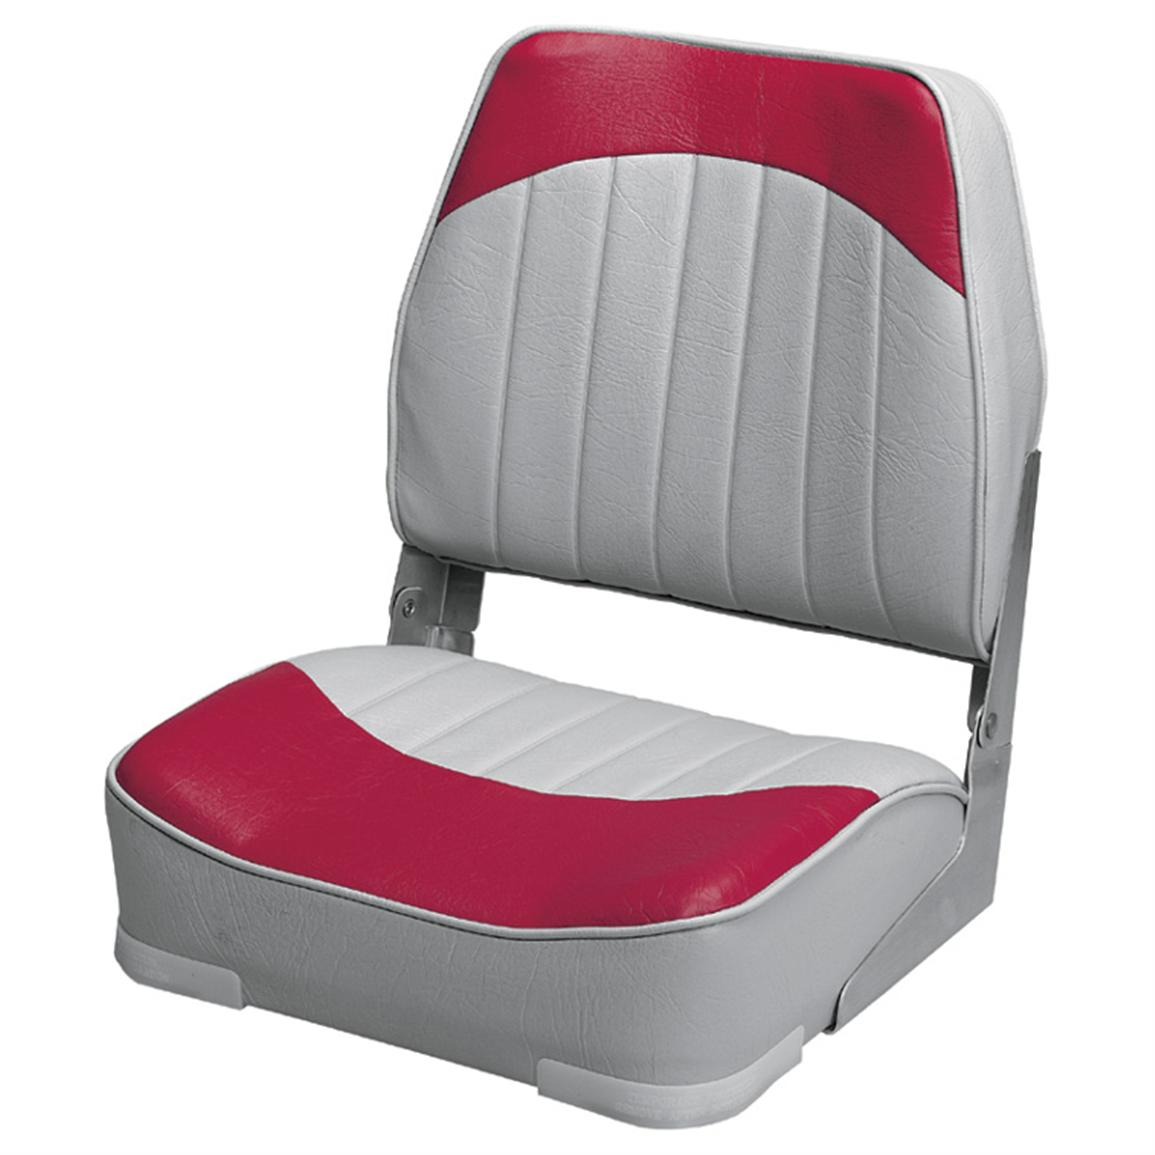 Wise Low-back Economy Fishing Boat Seat